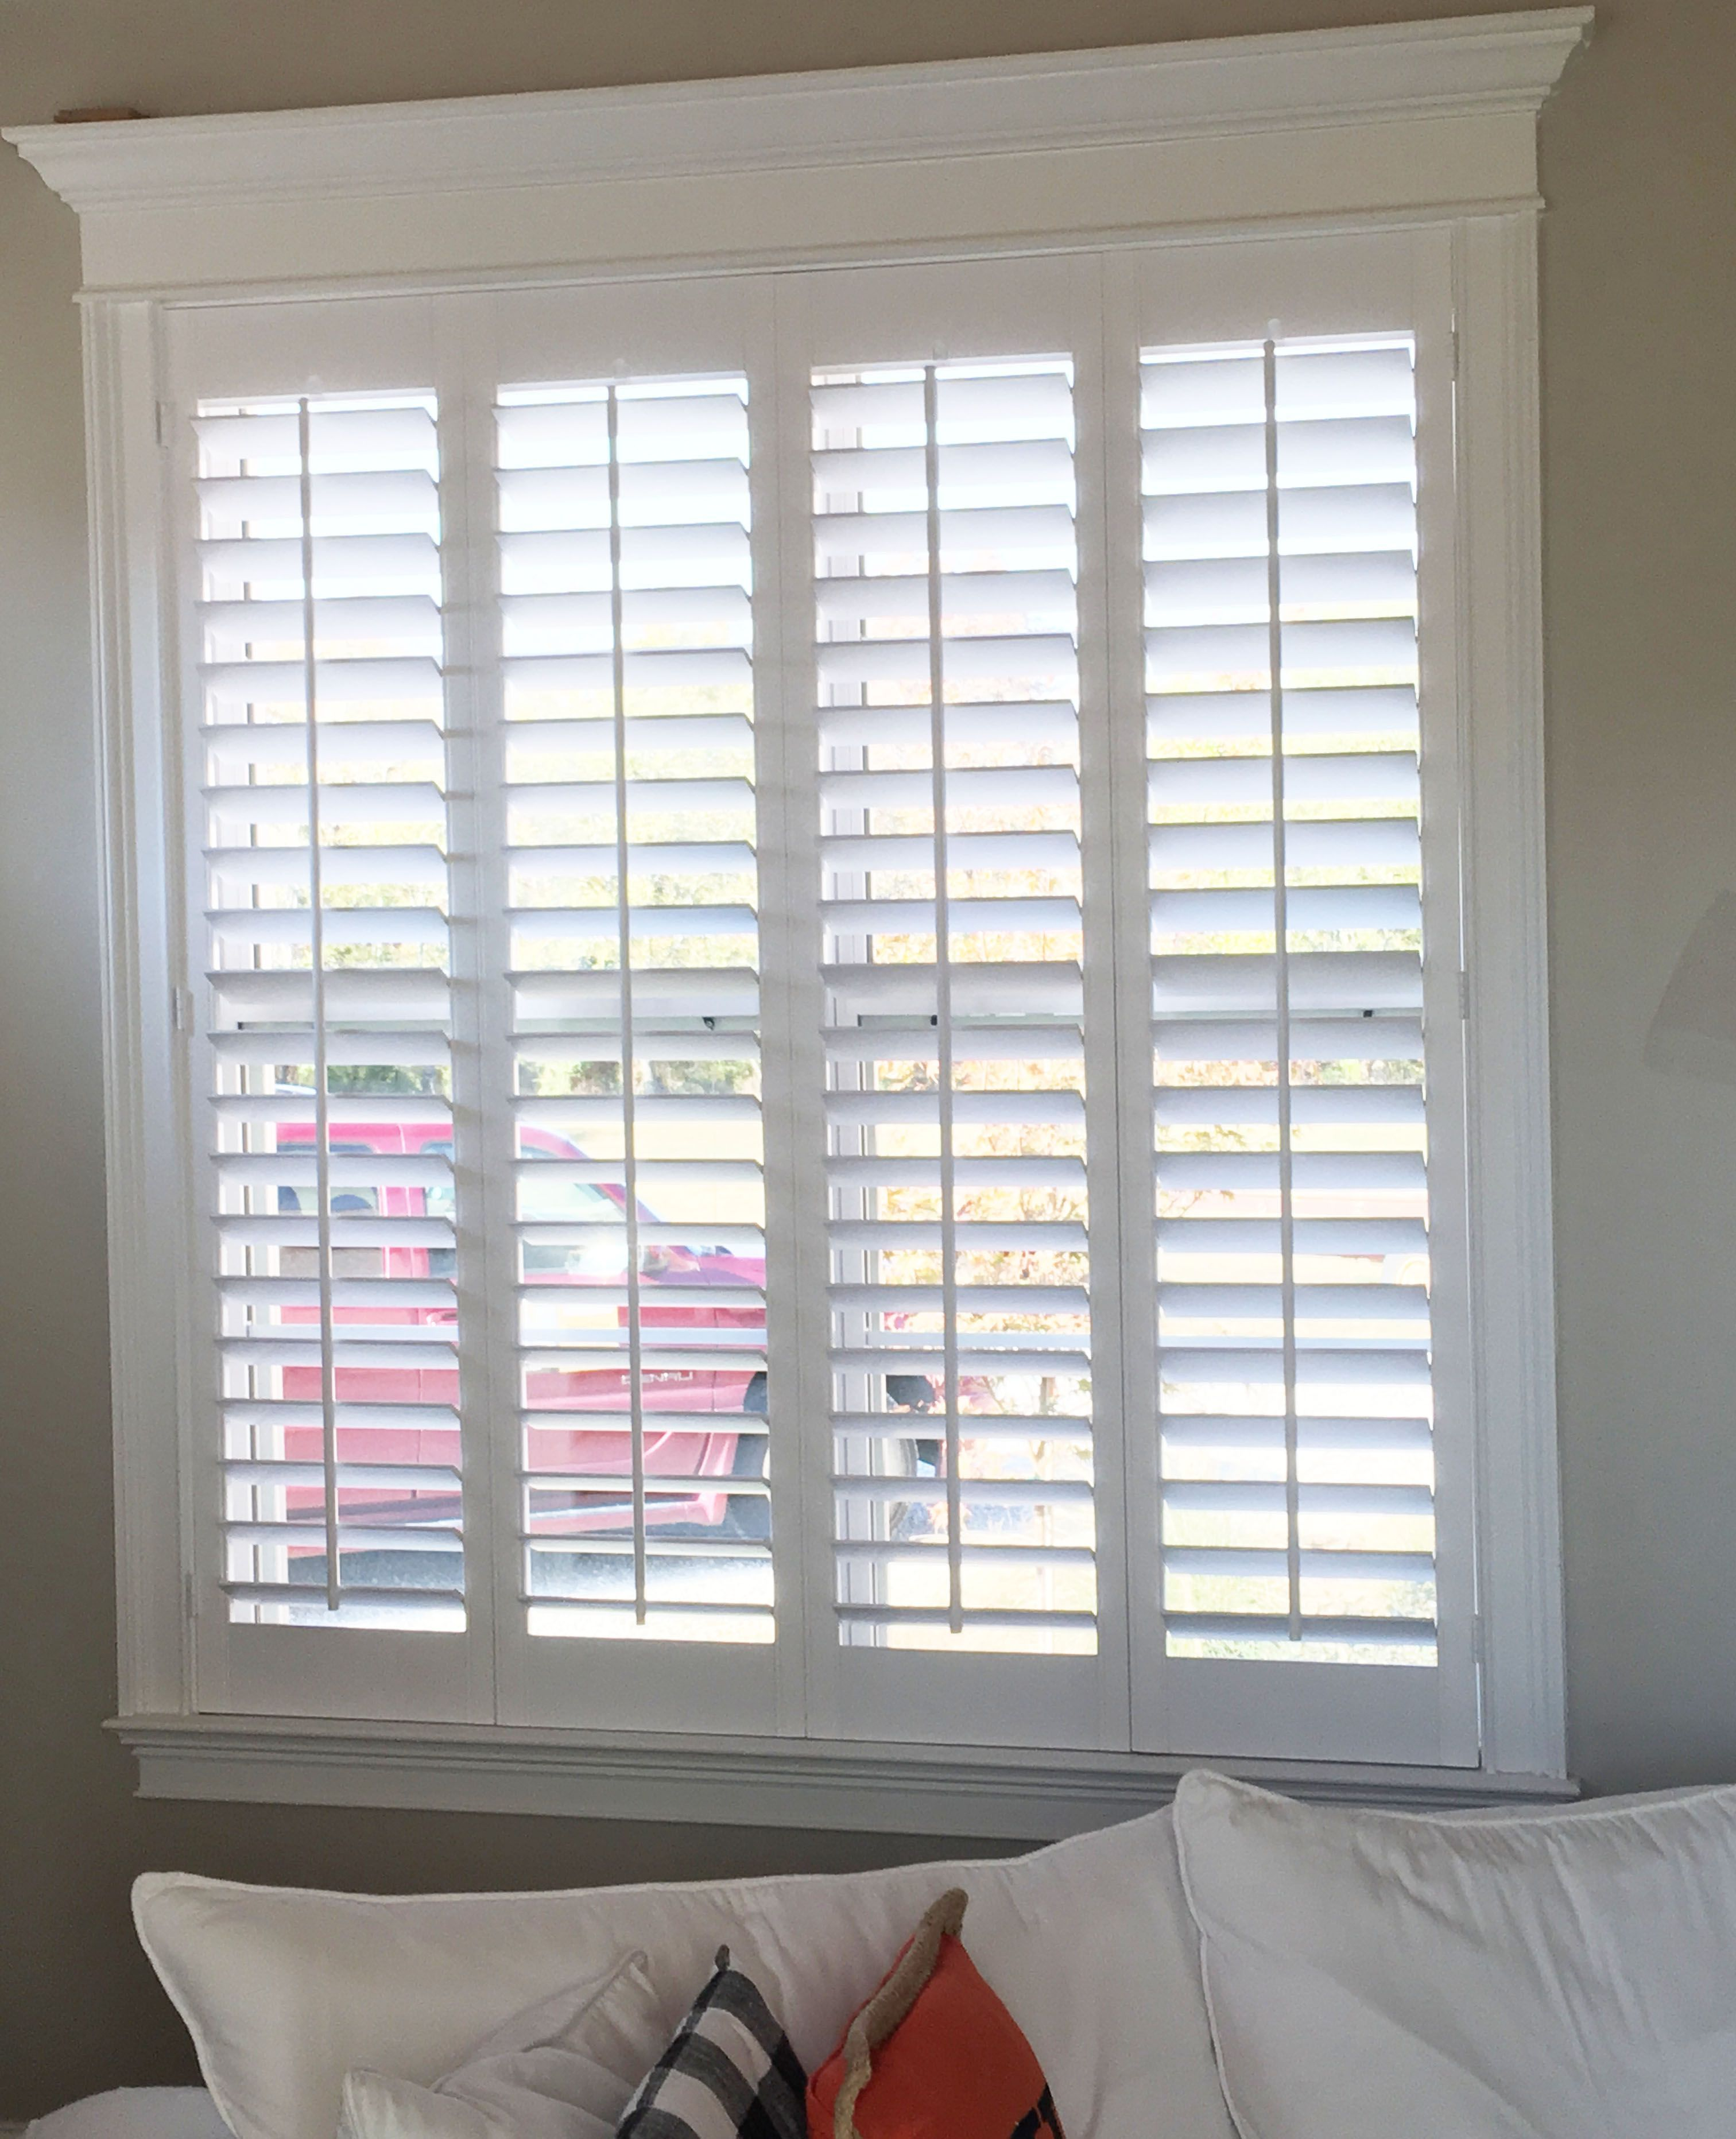 8 creative designs of basement window covers for your diy project rh pinterest com